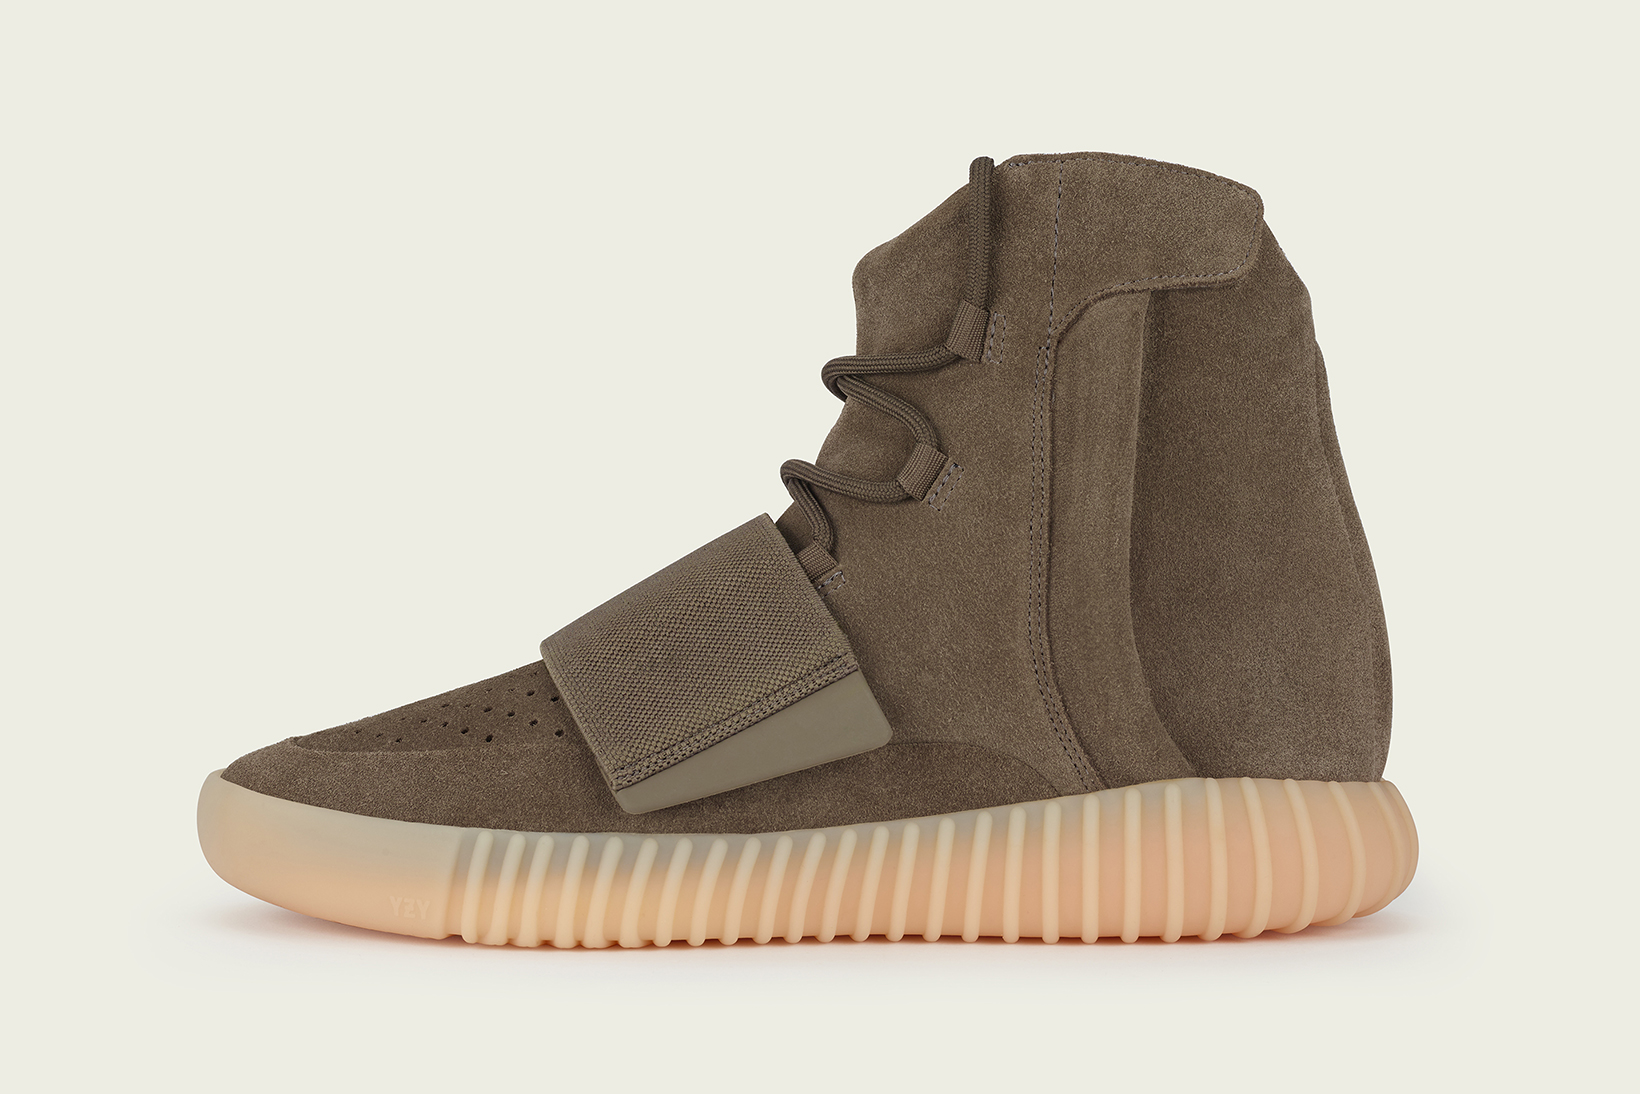 adidas Yeezy BOOST 750 Brown Official Store List Retail - 1767265